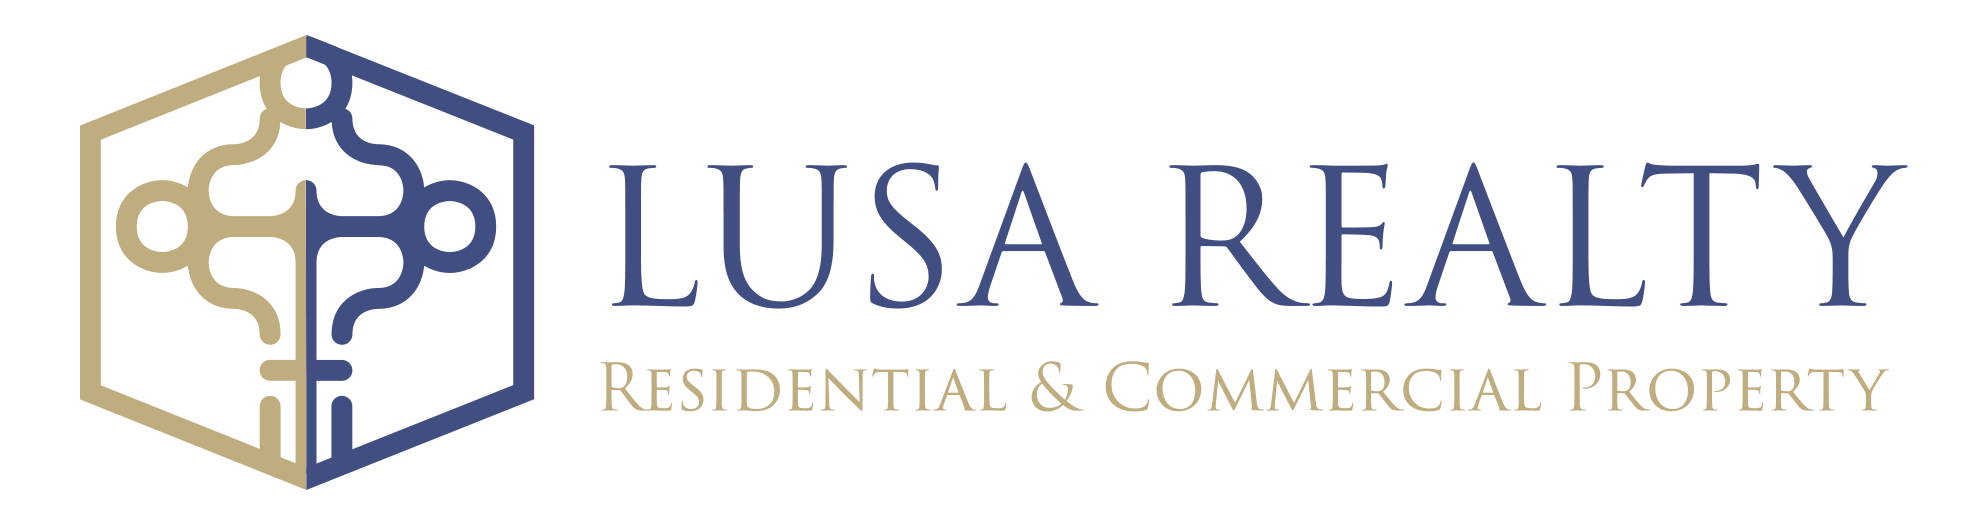 logo lusarealty